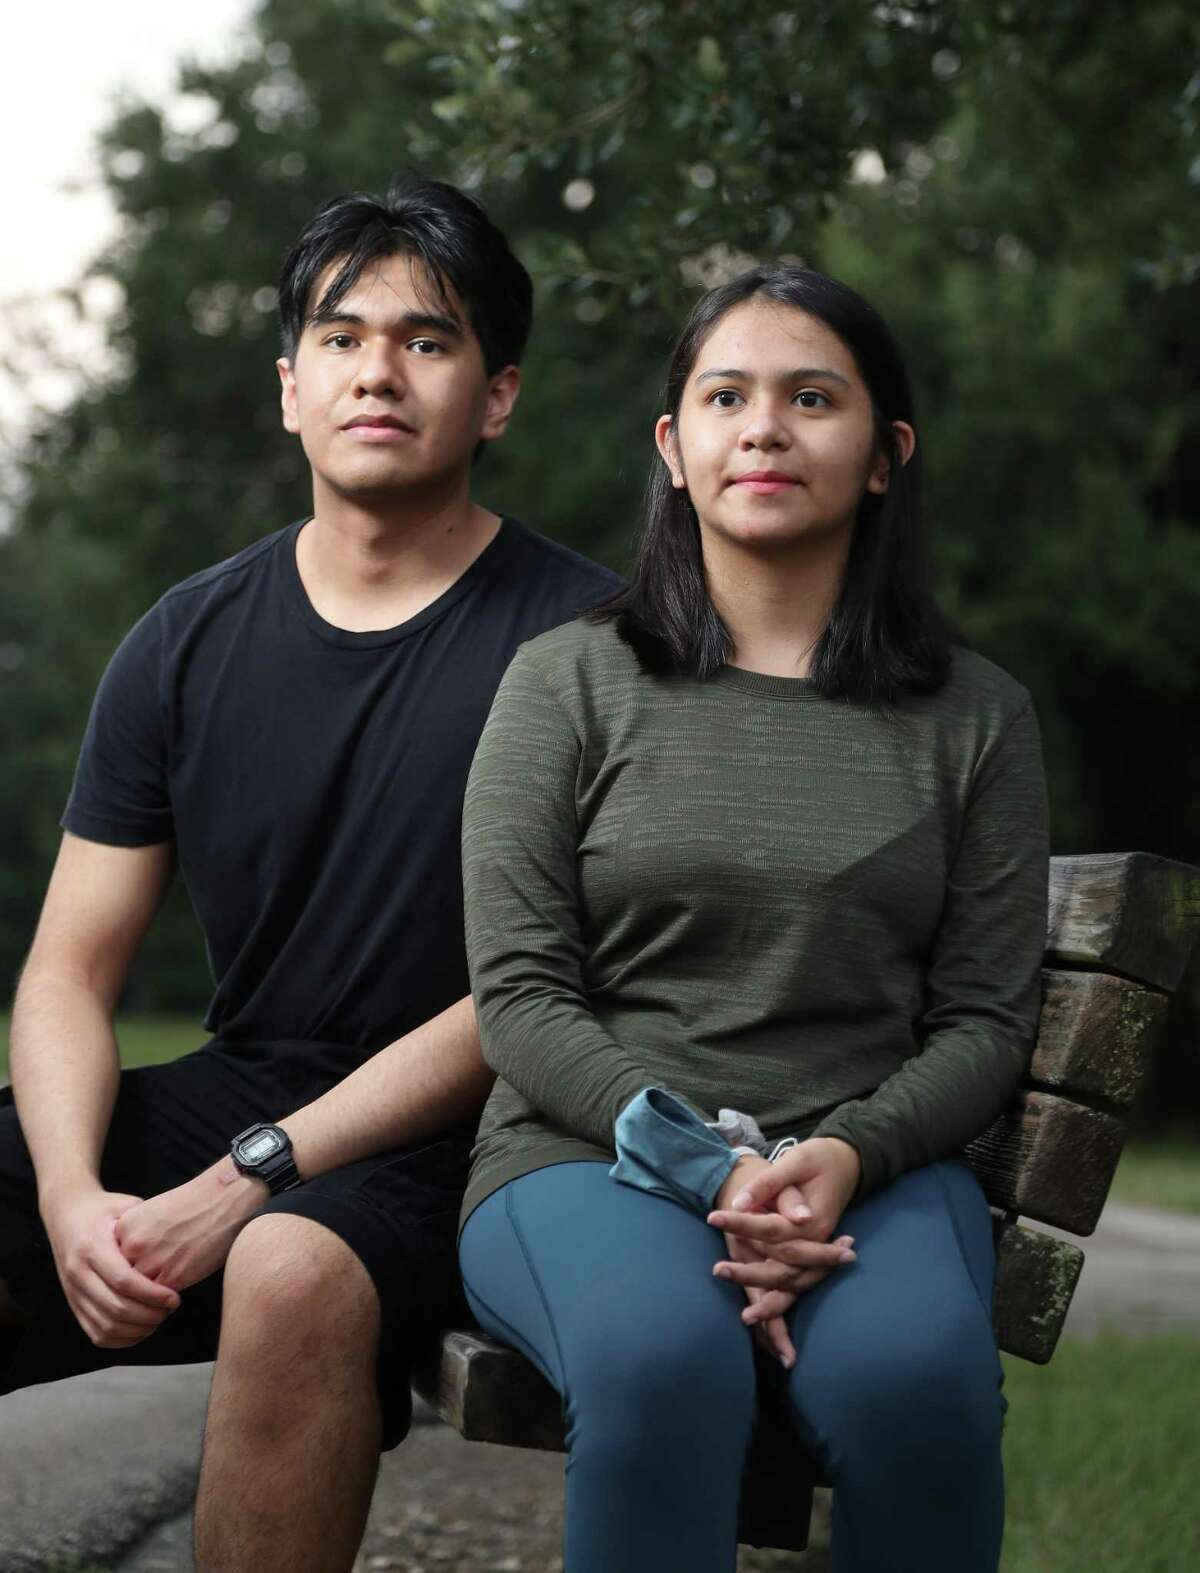 Jessica Gil, and her brother Alejandro are co-founders of an organization called doctorsoftomorrow56. Photographed near their home, Wednesday, August 18, 2021, in Houston. Alejandro Gil founded the organization a year ago to educate and give more insight about medicine to high school students, college students, medical students, and anyone interested in medicine.